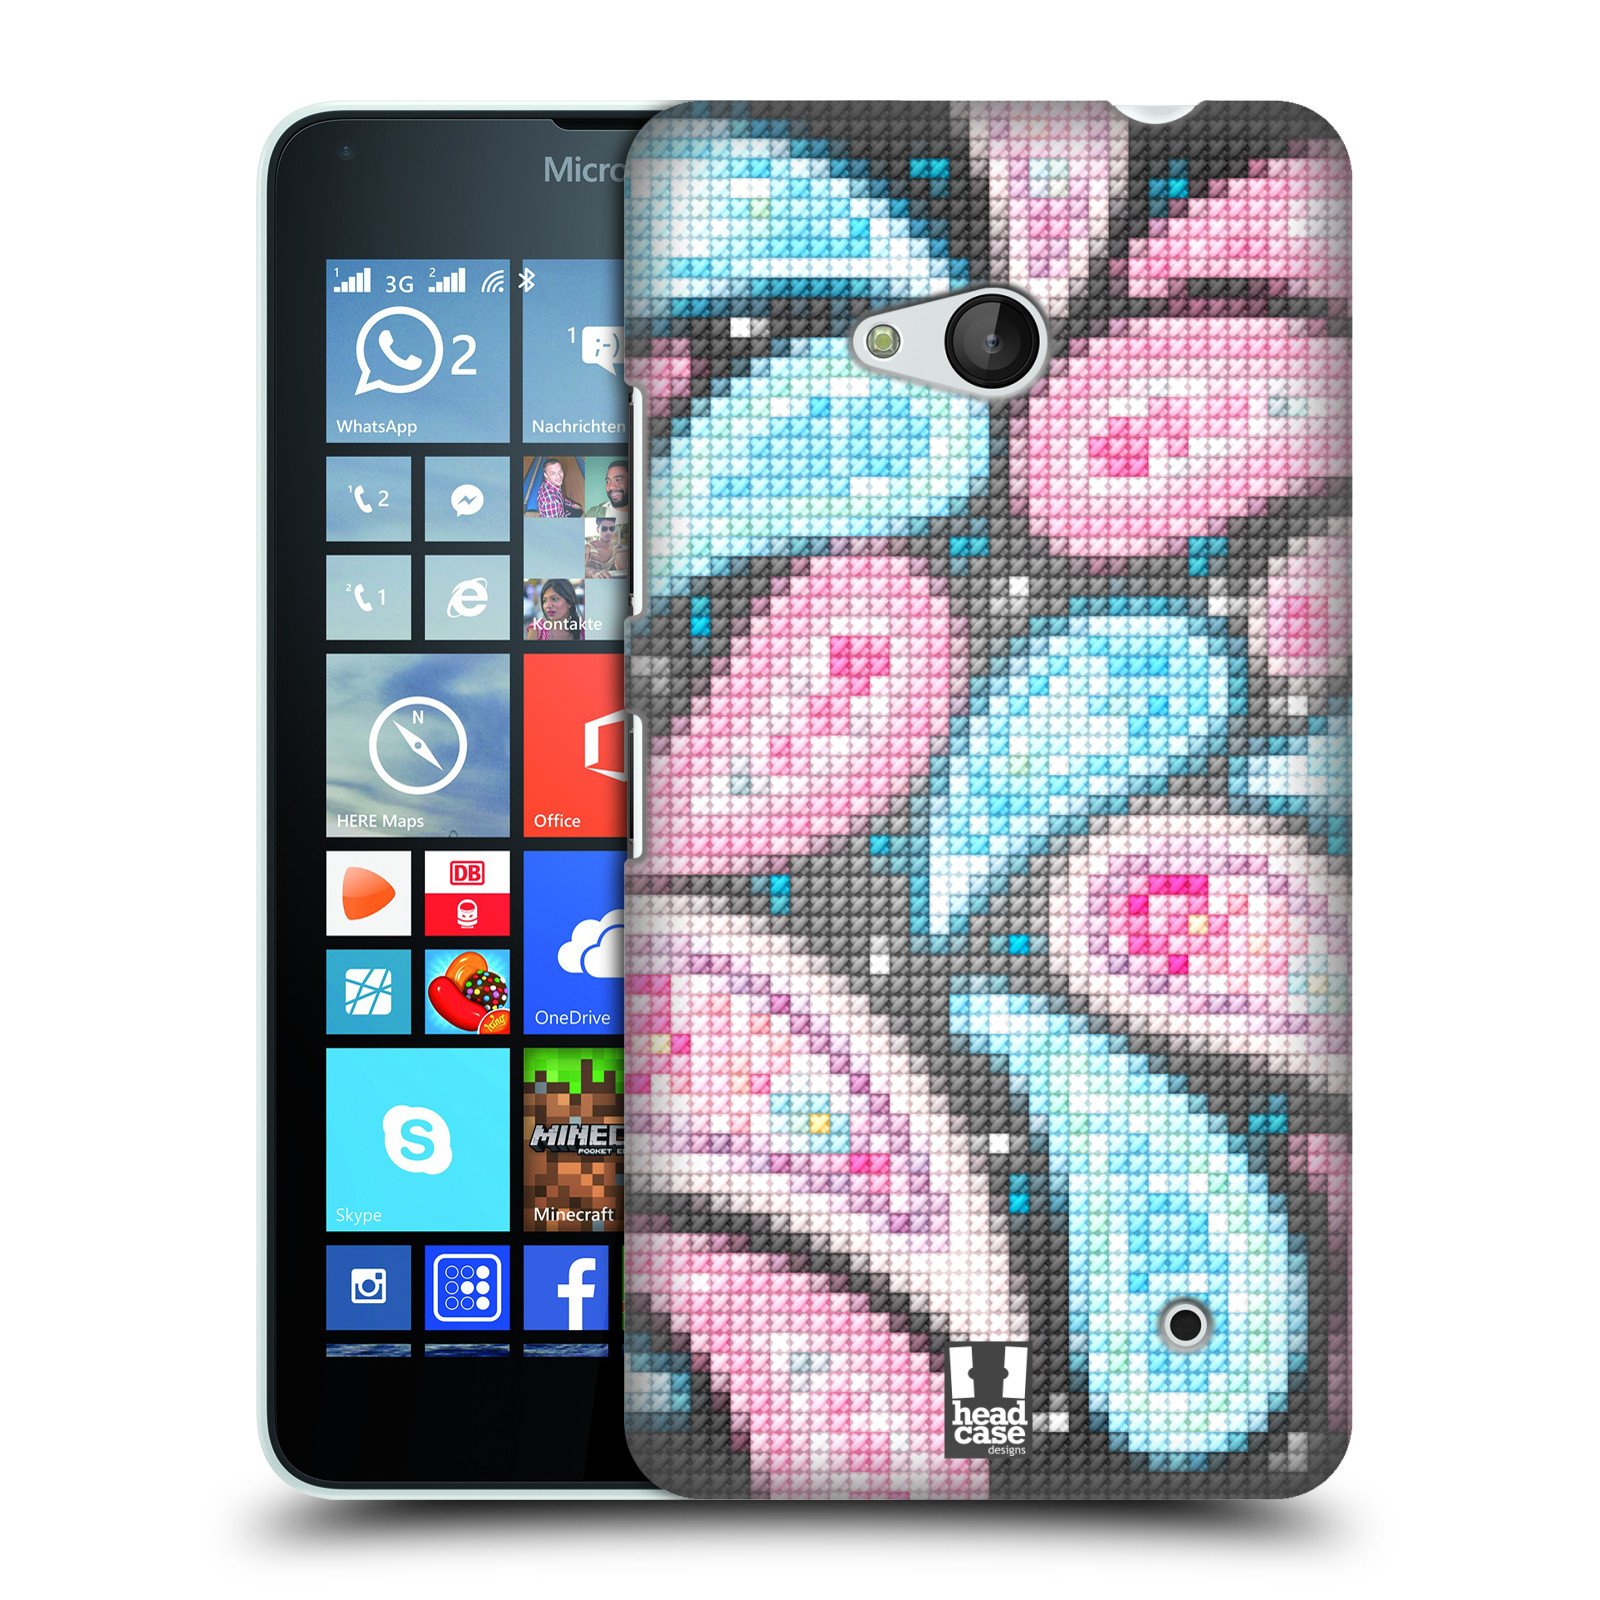 HEAD-CASE-DESIGNS-MIXED-UP-MUSTER-RUCKSEITE-HULLE-FUR-MICROSOFT-HANDYS